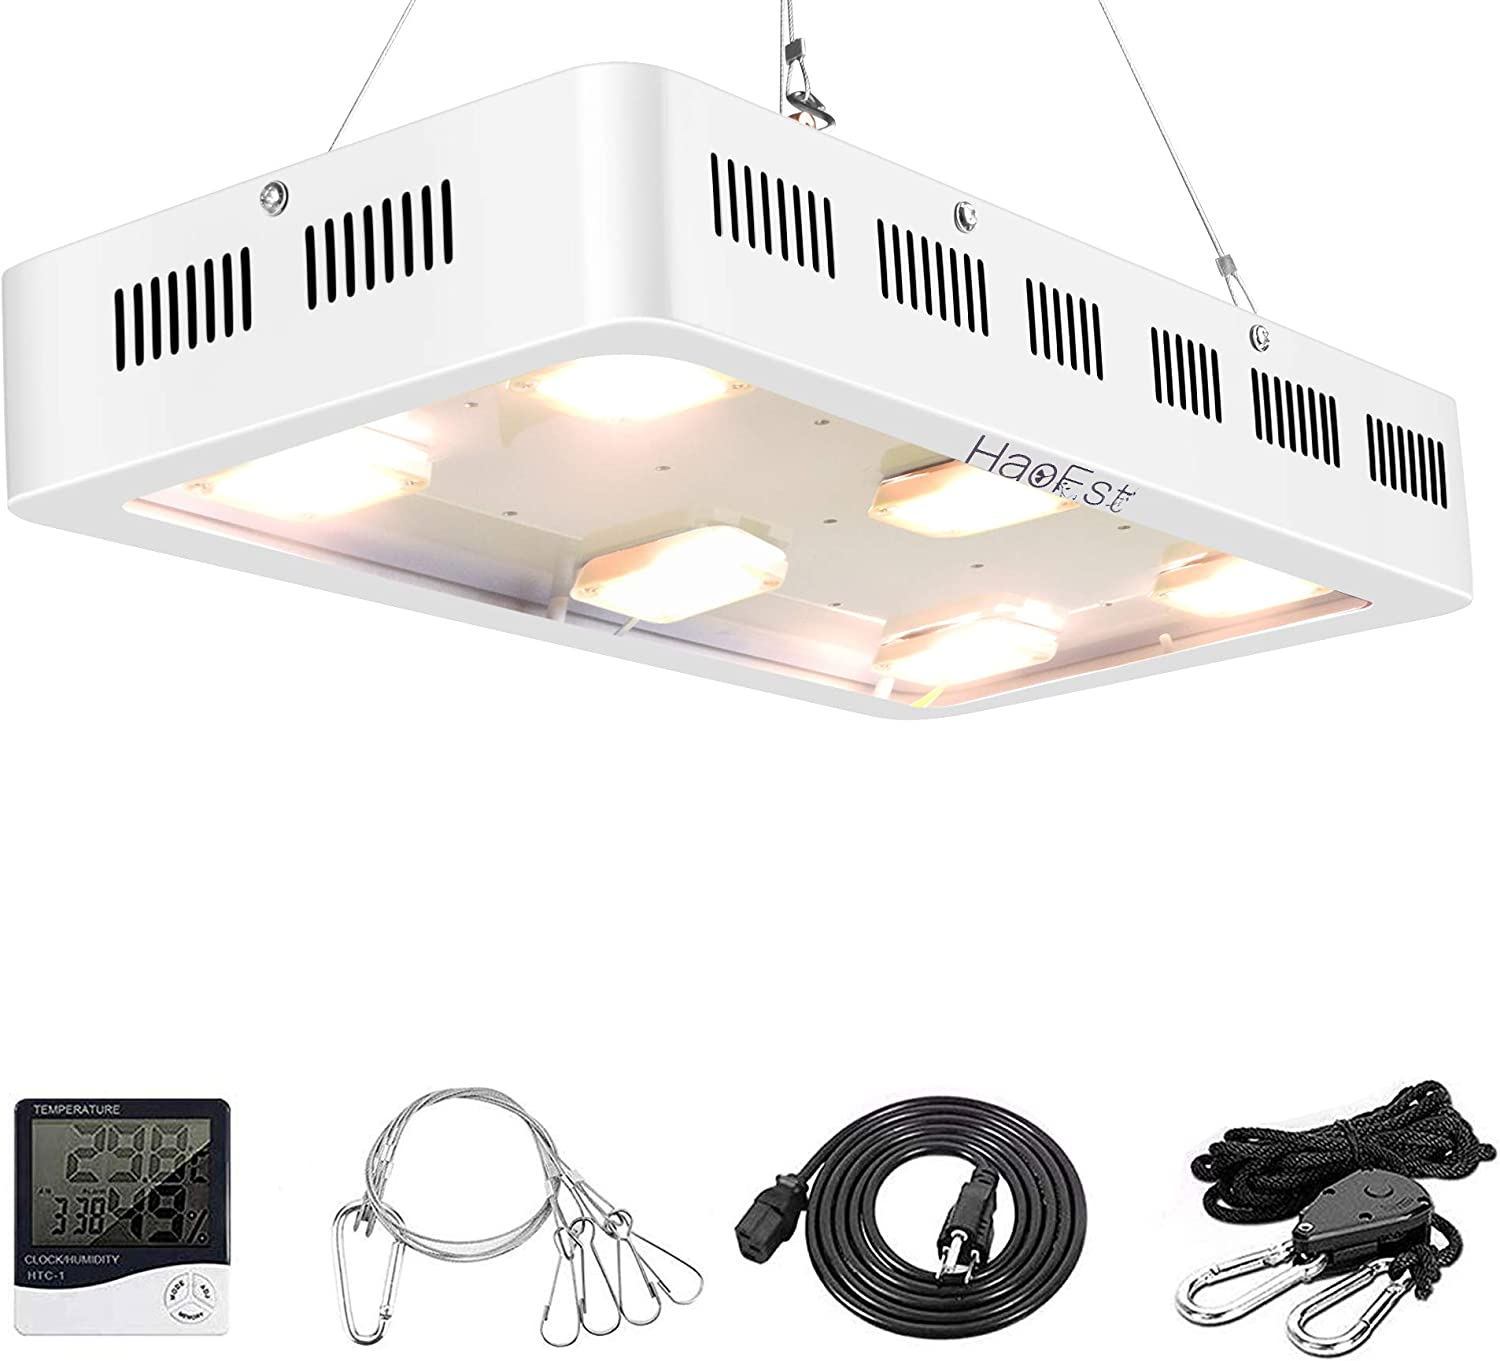 1800W LED Grow Light X6 Sunshine Full Spectrum Grow Light for Greenhouse and Indoor Plant Flowering Growing White